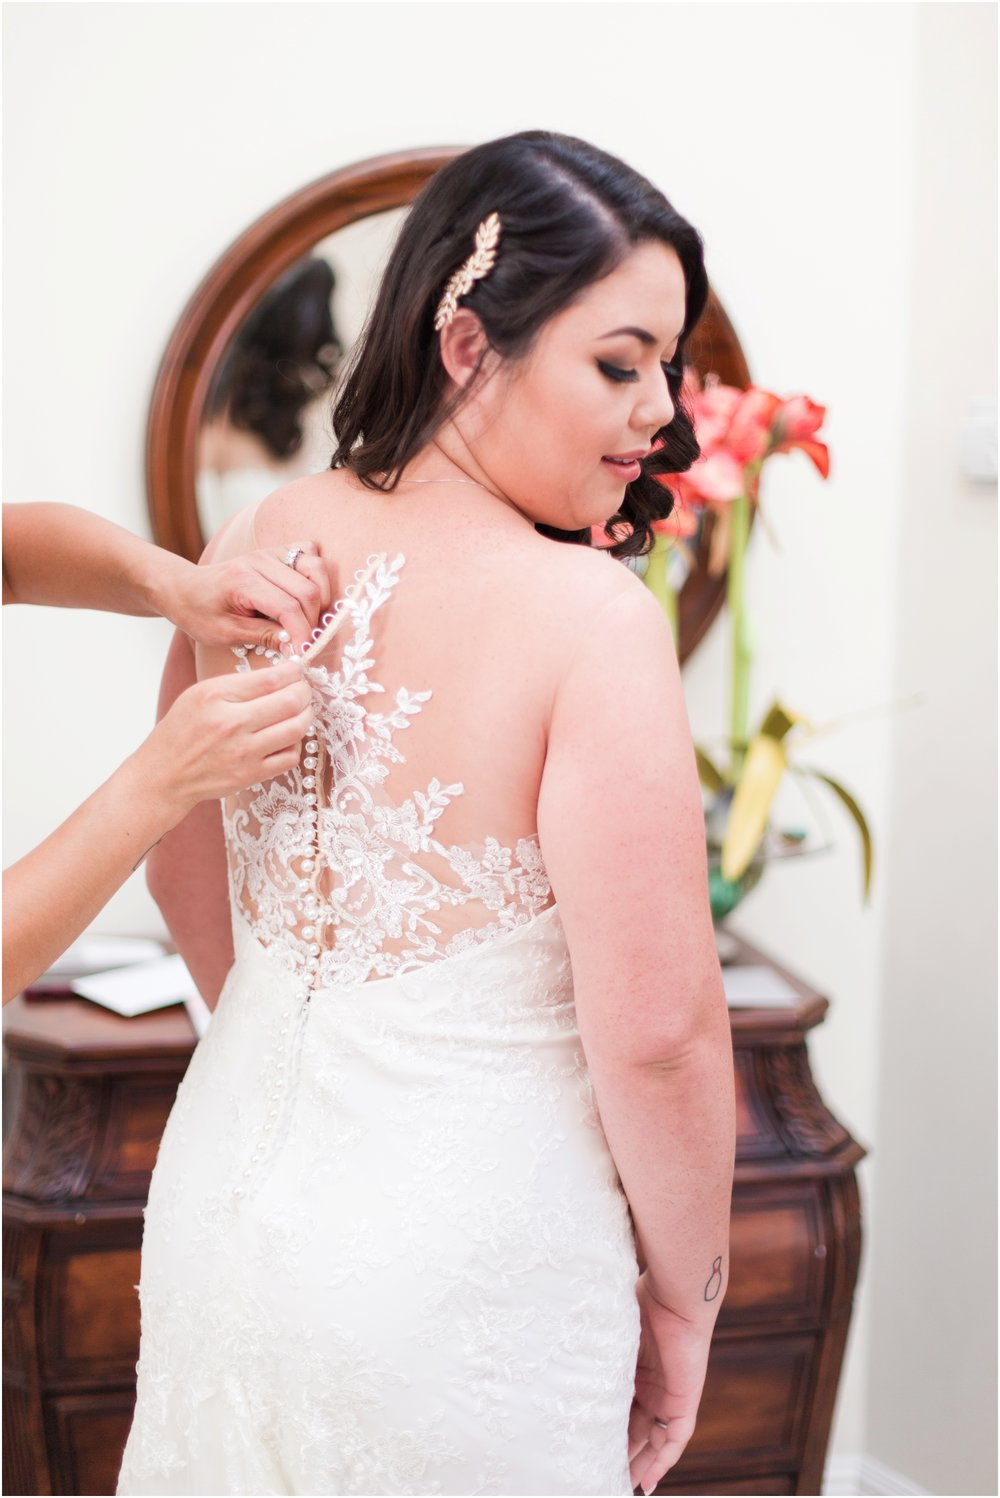 Sanborn Park Saratoga wedding pictures by Briana Calderon Photography_0105.jpg